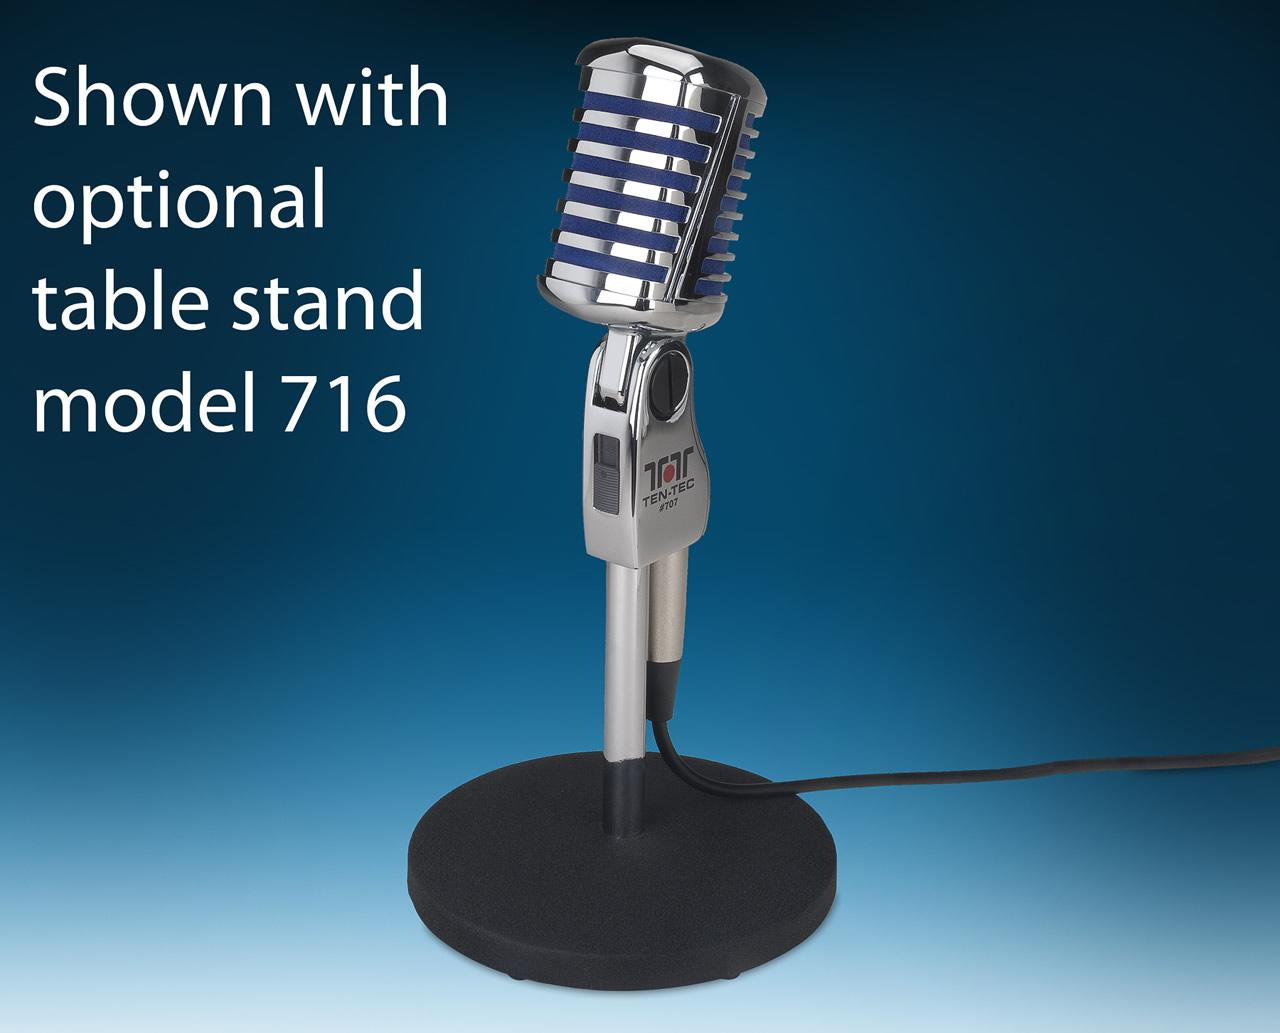 707 Regal desk microphone with 707/T8 lead included (Ten Tec 8 p